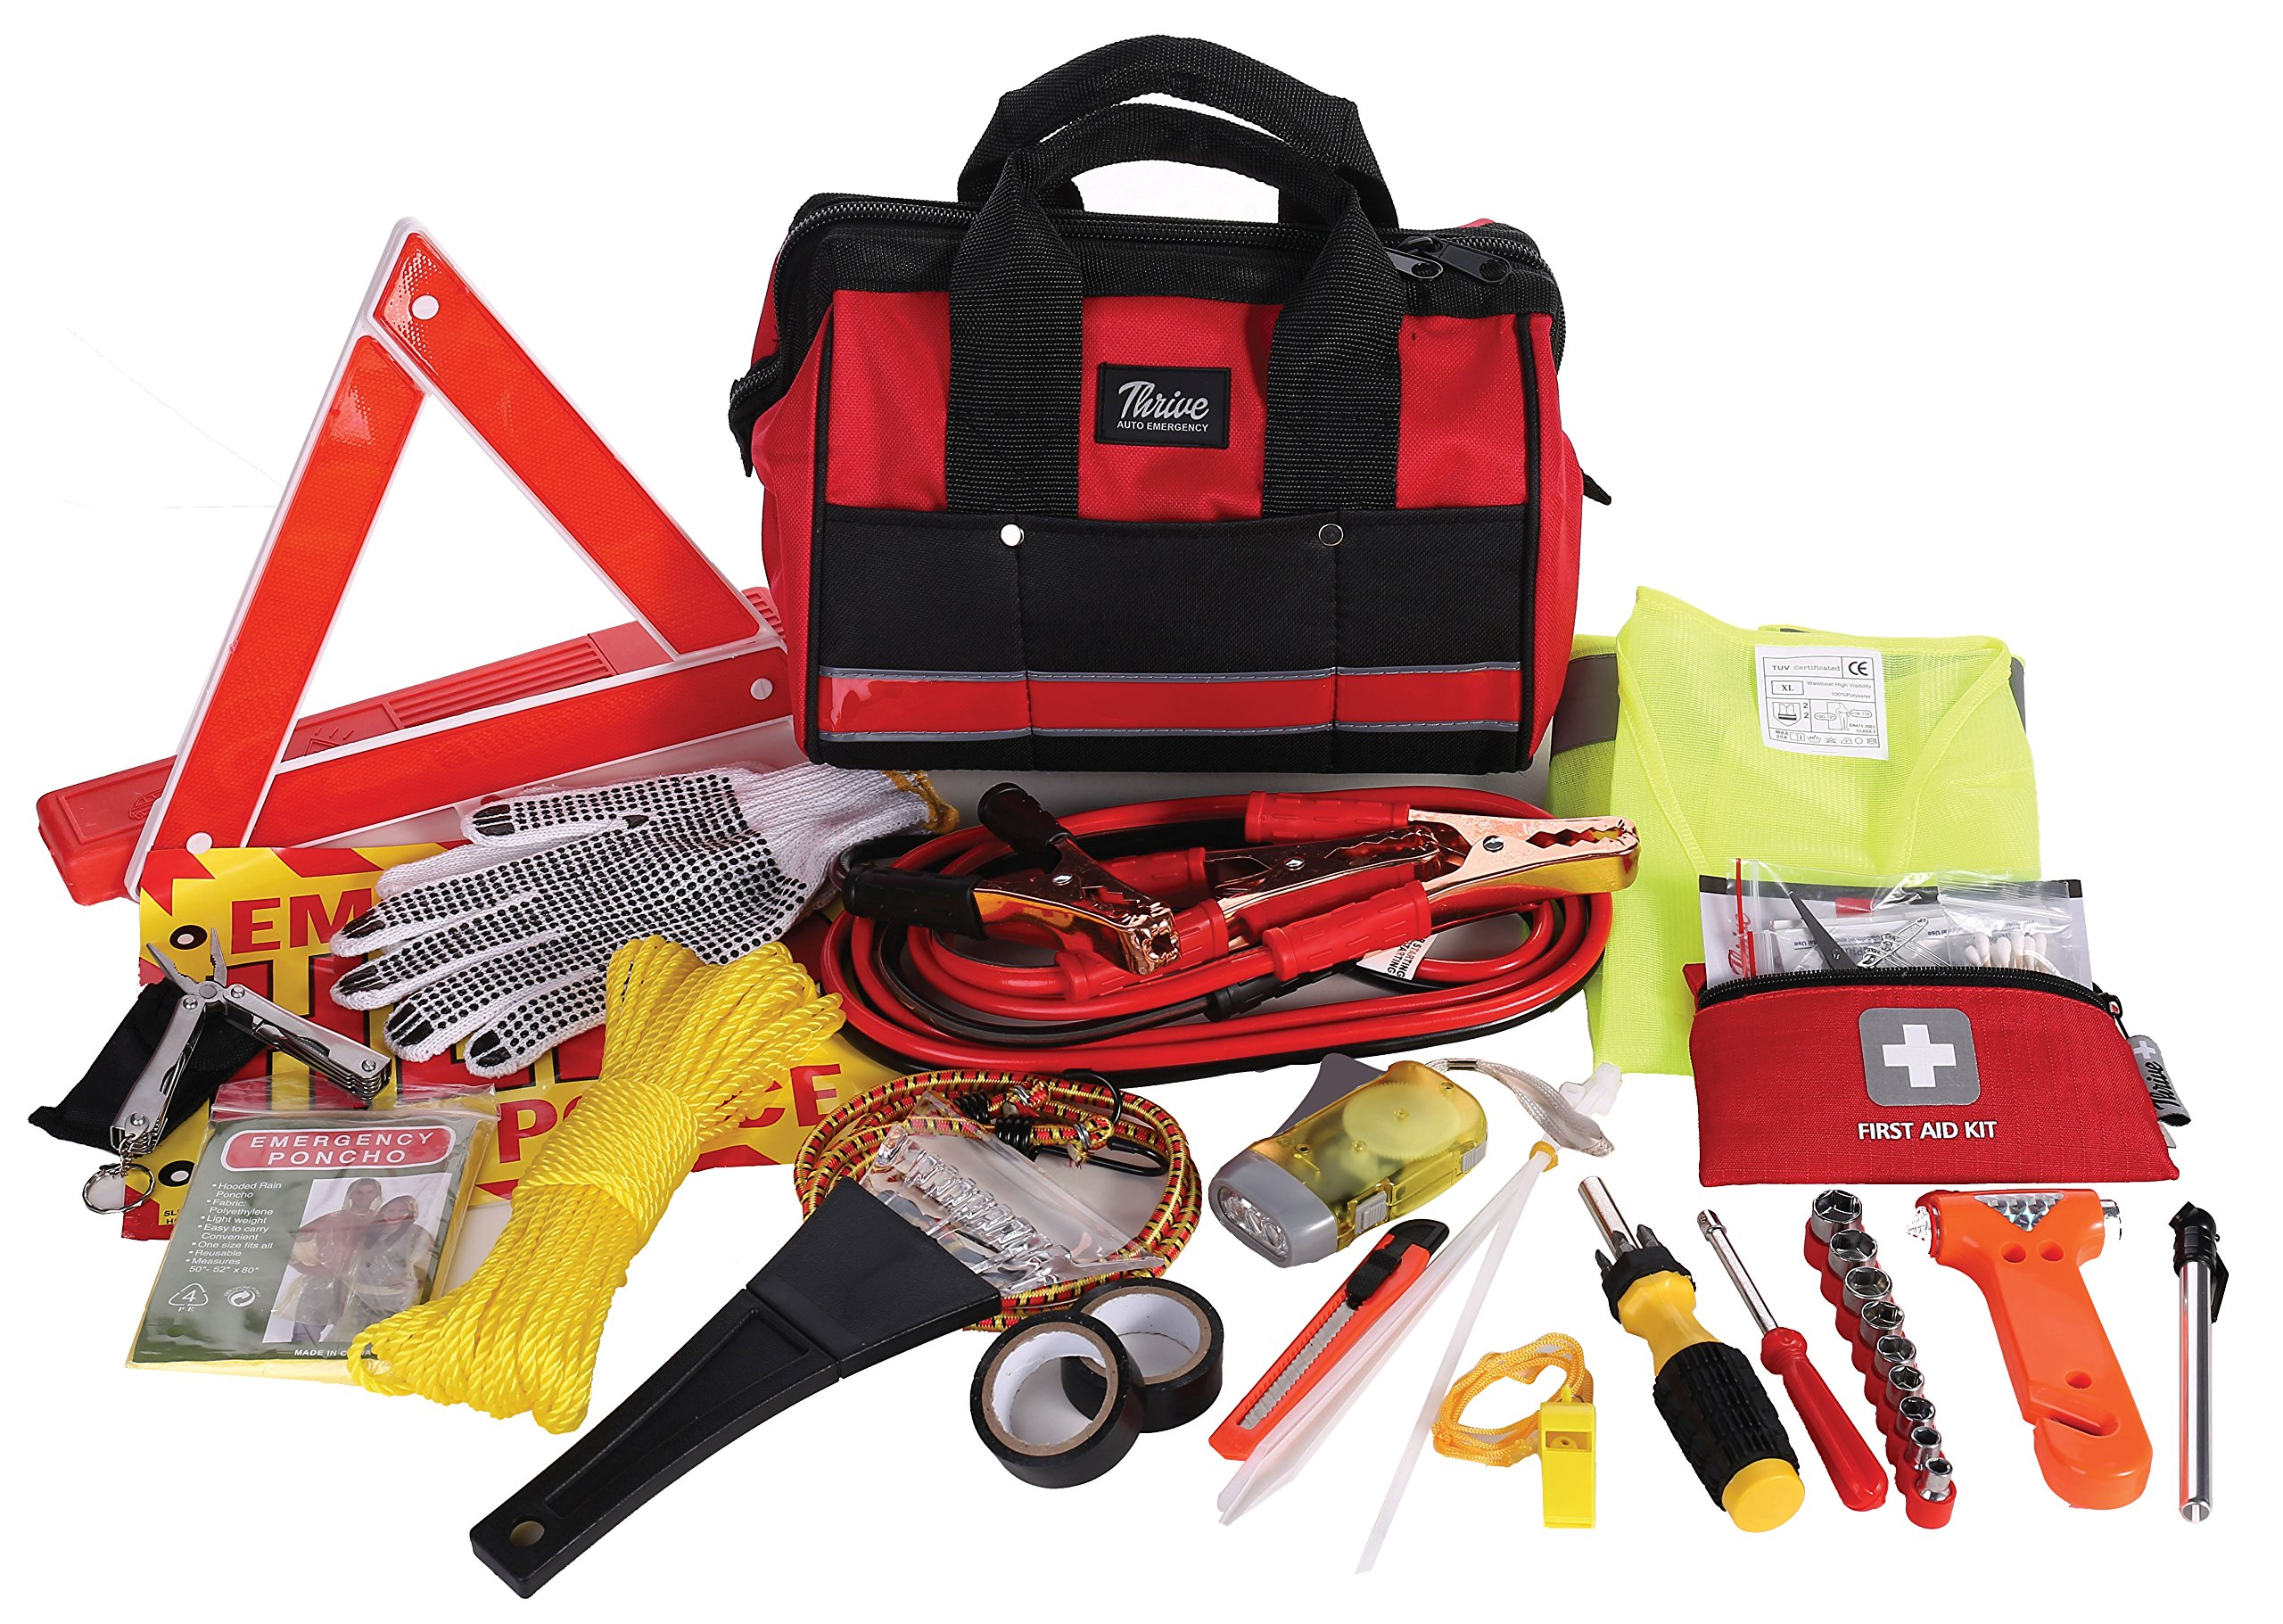 Safety Vest Audew Car Emergency Kit Roadside Assistance Kit Car First Aid Tool Safety Kit Contains Jumper Cables Reflective Triangle Tow Rope